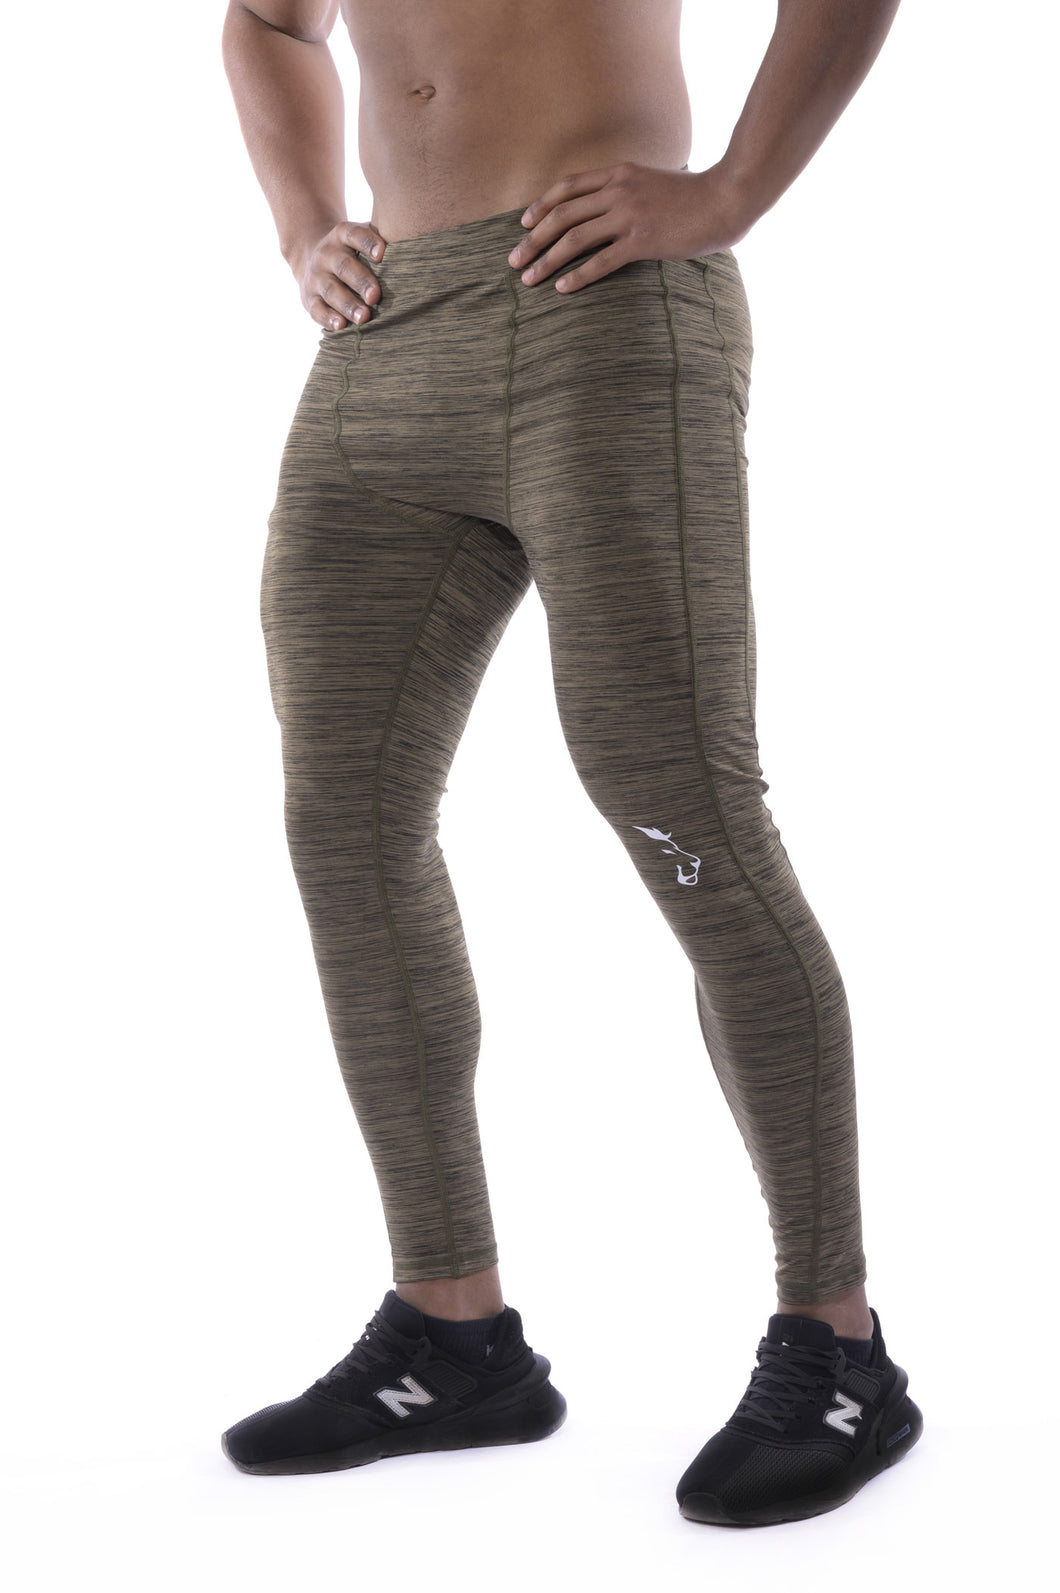 Knee Tag - Men Leggings Dark Green